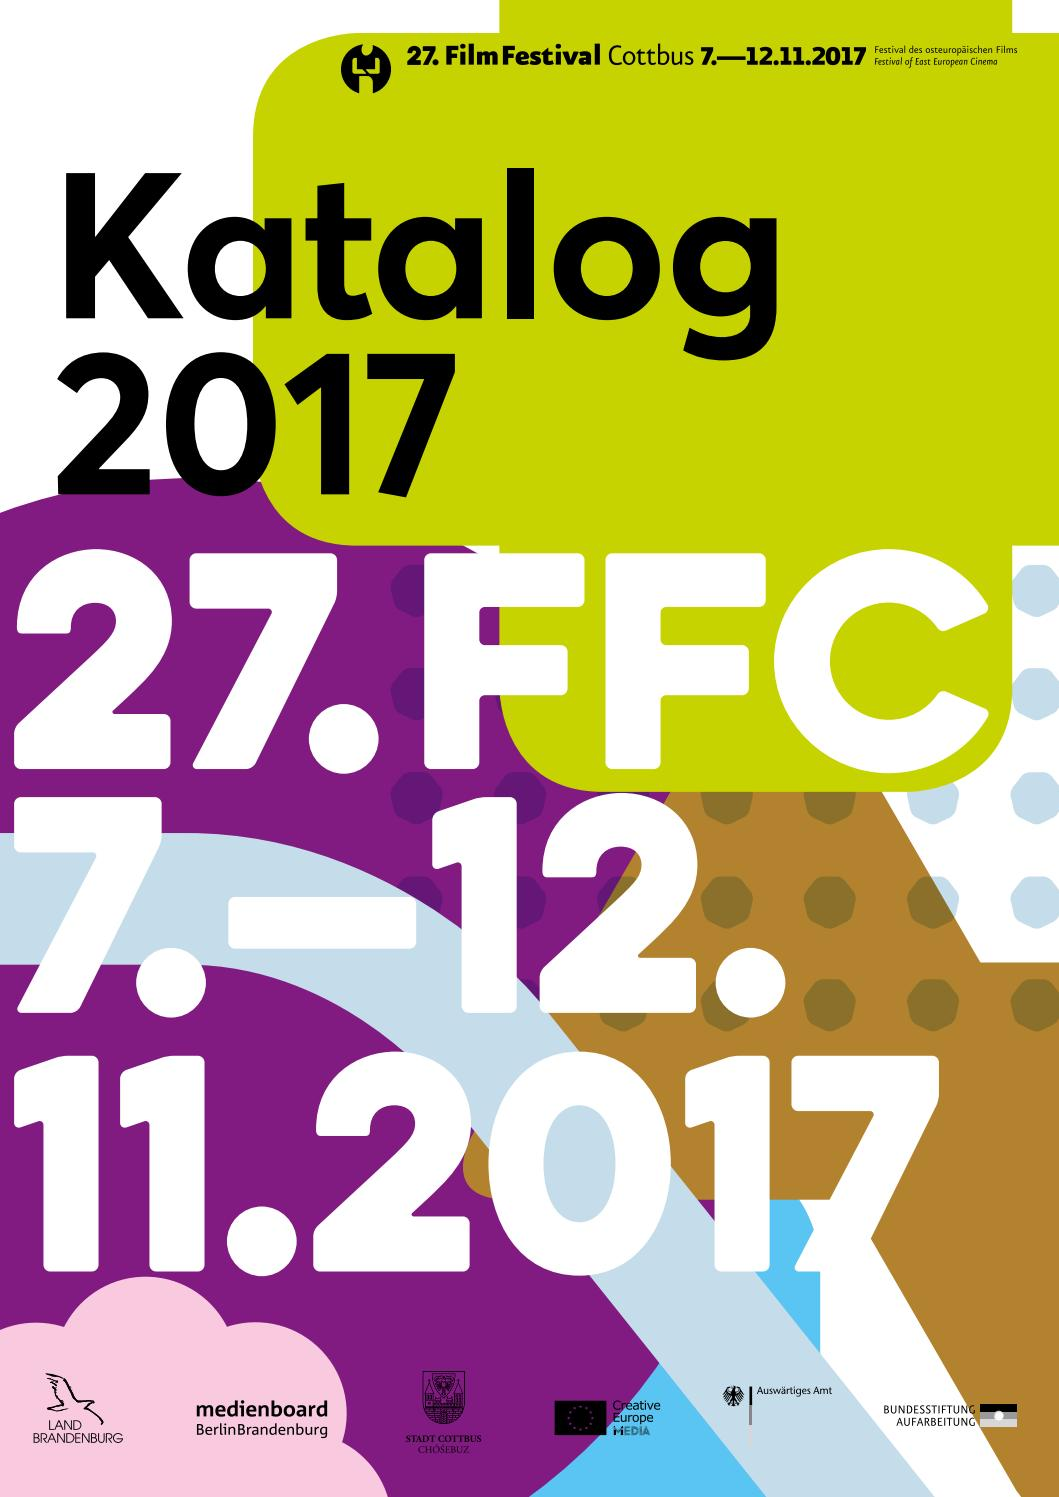 new concept 751af 2044f 27. FilmFestival Cottbus - Katalog Catalogue by FilmFestival Cottbus - issuu